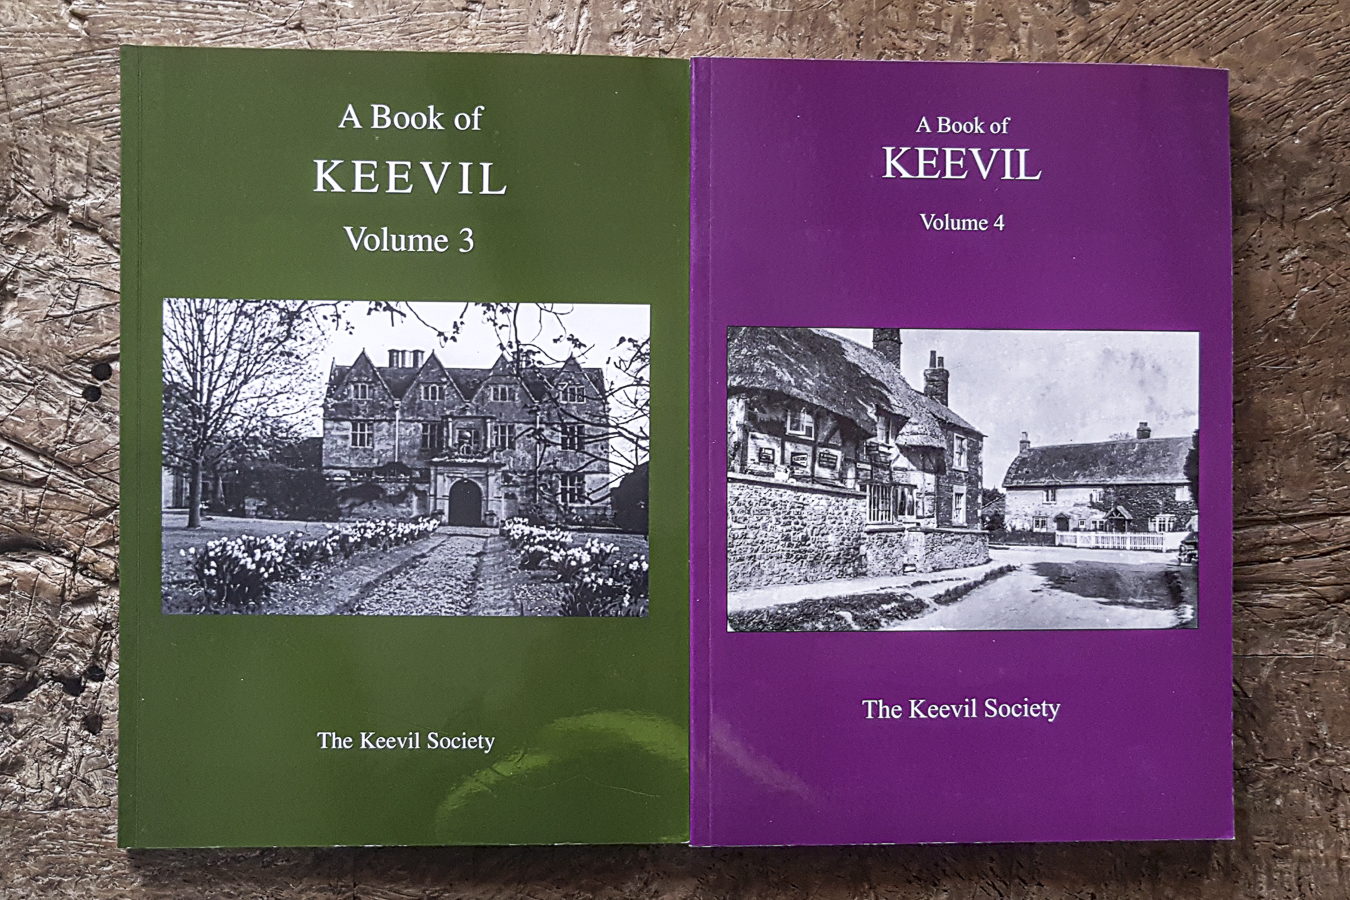 Cover of volume 3 and 4 of A Book of Keevil